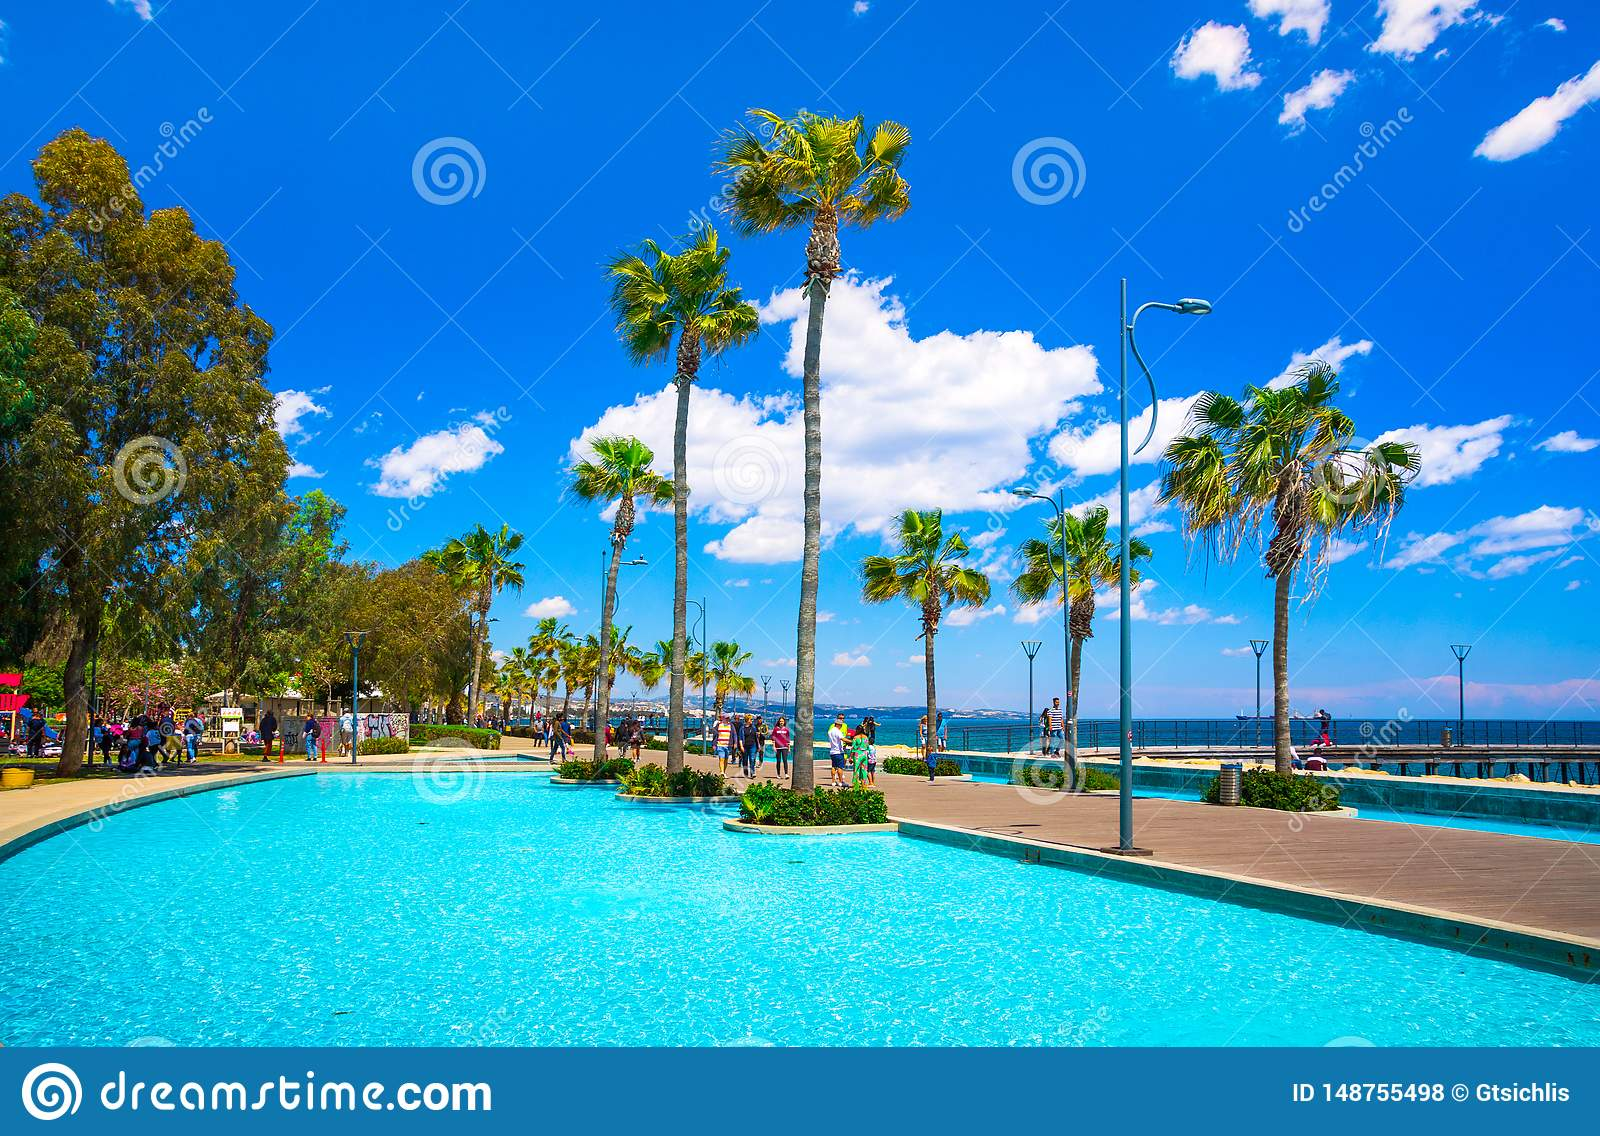 Beautiful sea promenade with palms, sculptures and pools in Limassol, Cyprus